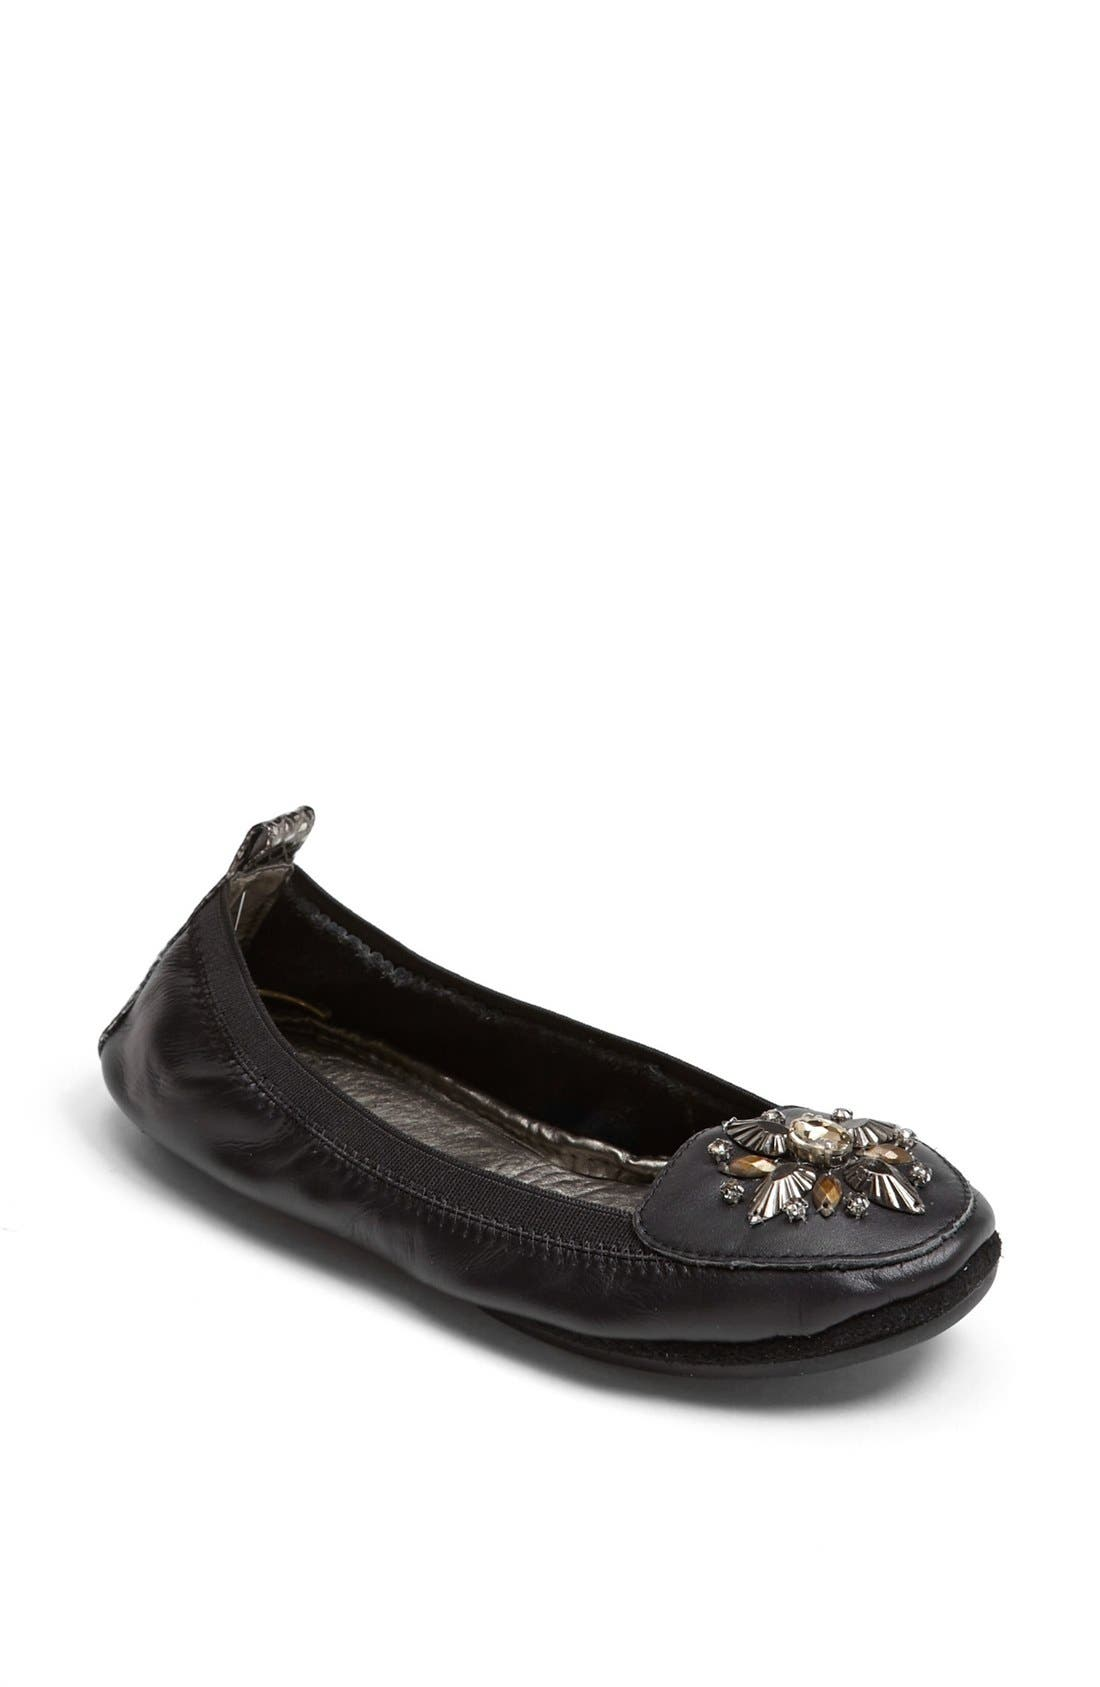 Alternate Image 1 Selected - Yosi Samra Foldable Ballet Flat